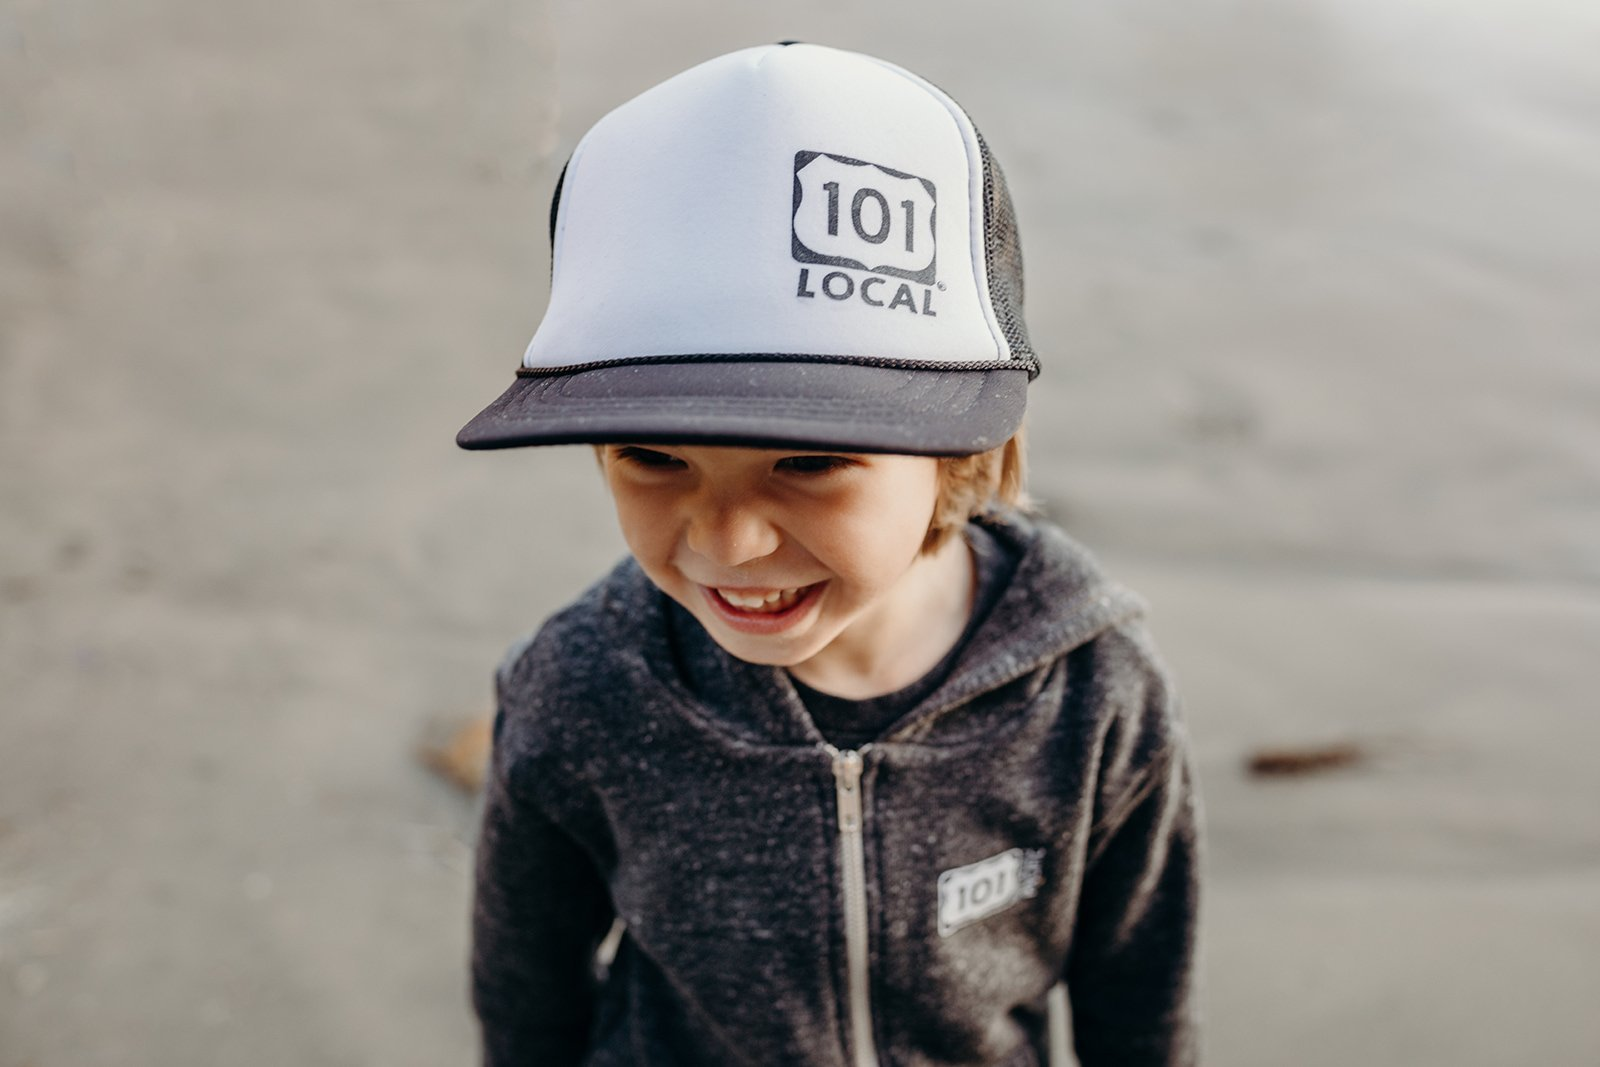 101 Local Youth Trucker Hat